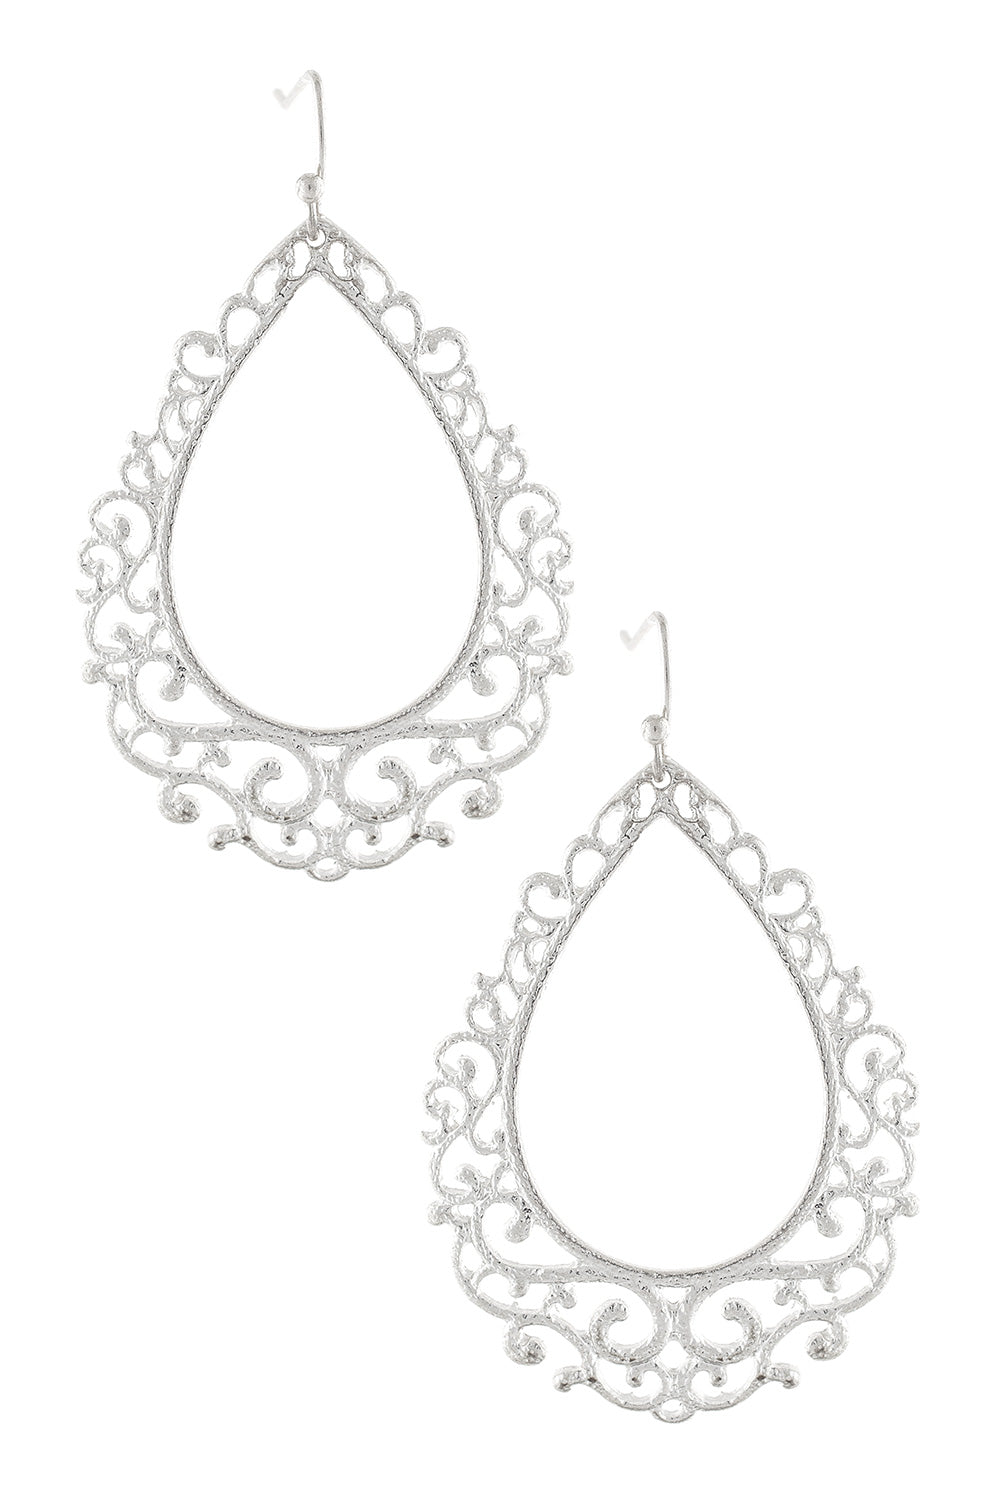 Type 2 Filigree Frame Earrings